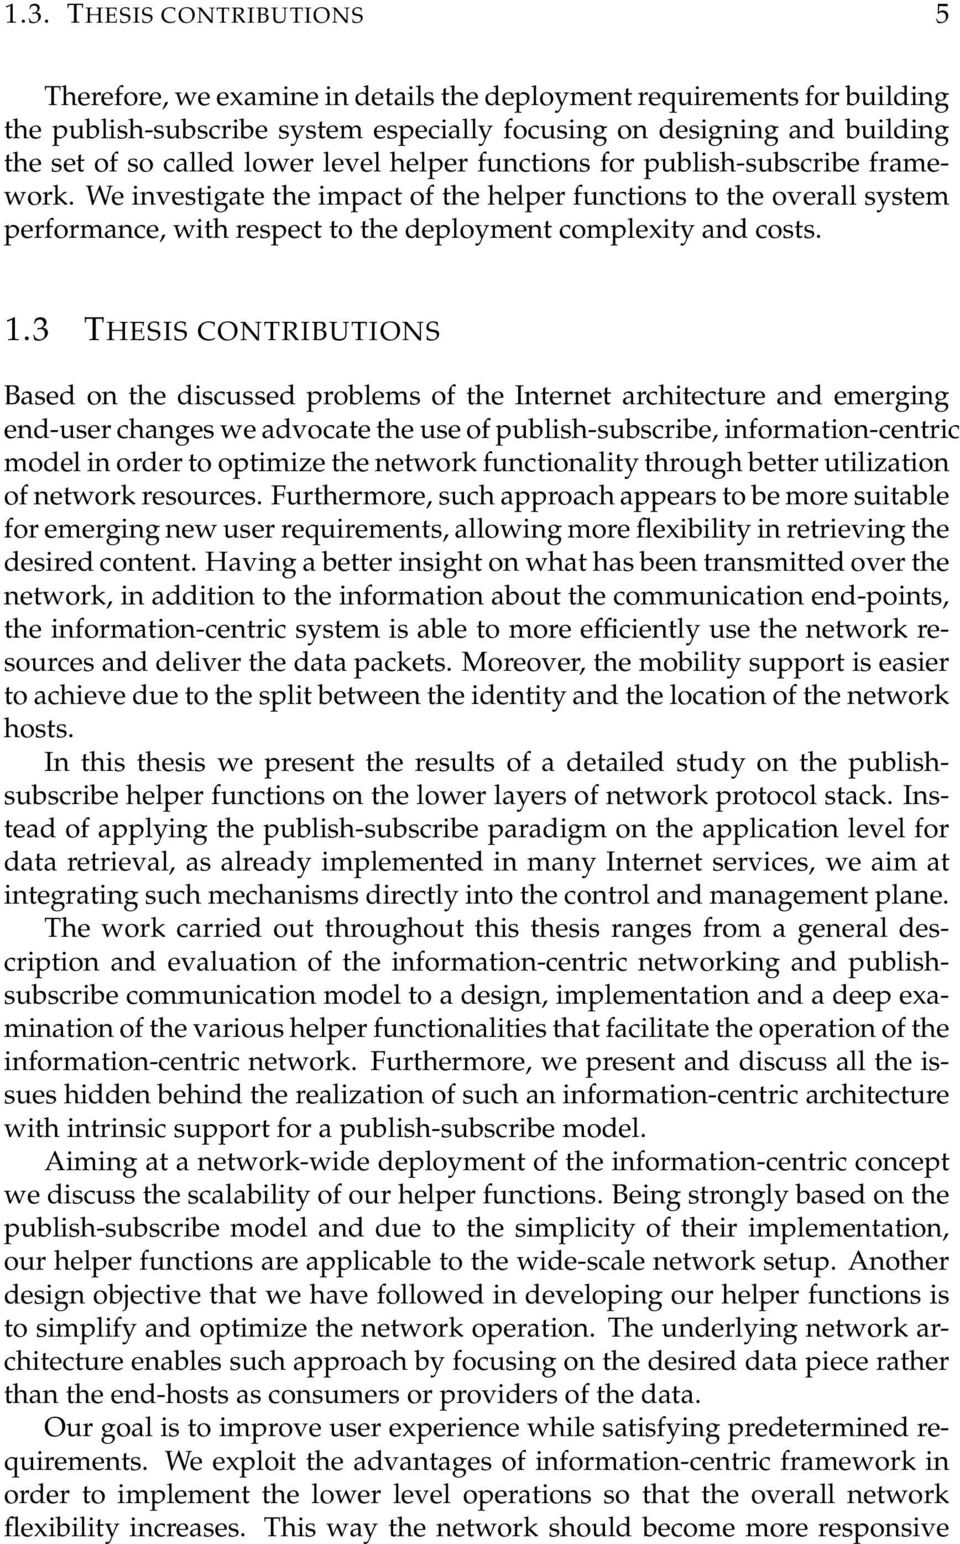 1.3 THESIS CONTRIBUTIONS Based on the discussed problems of the Internet architecture and emerging end-user changes we advocate the use of publish-subscribe, information-centric model in order to